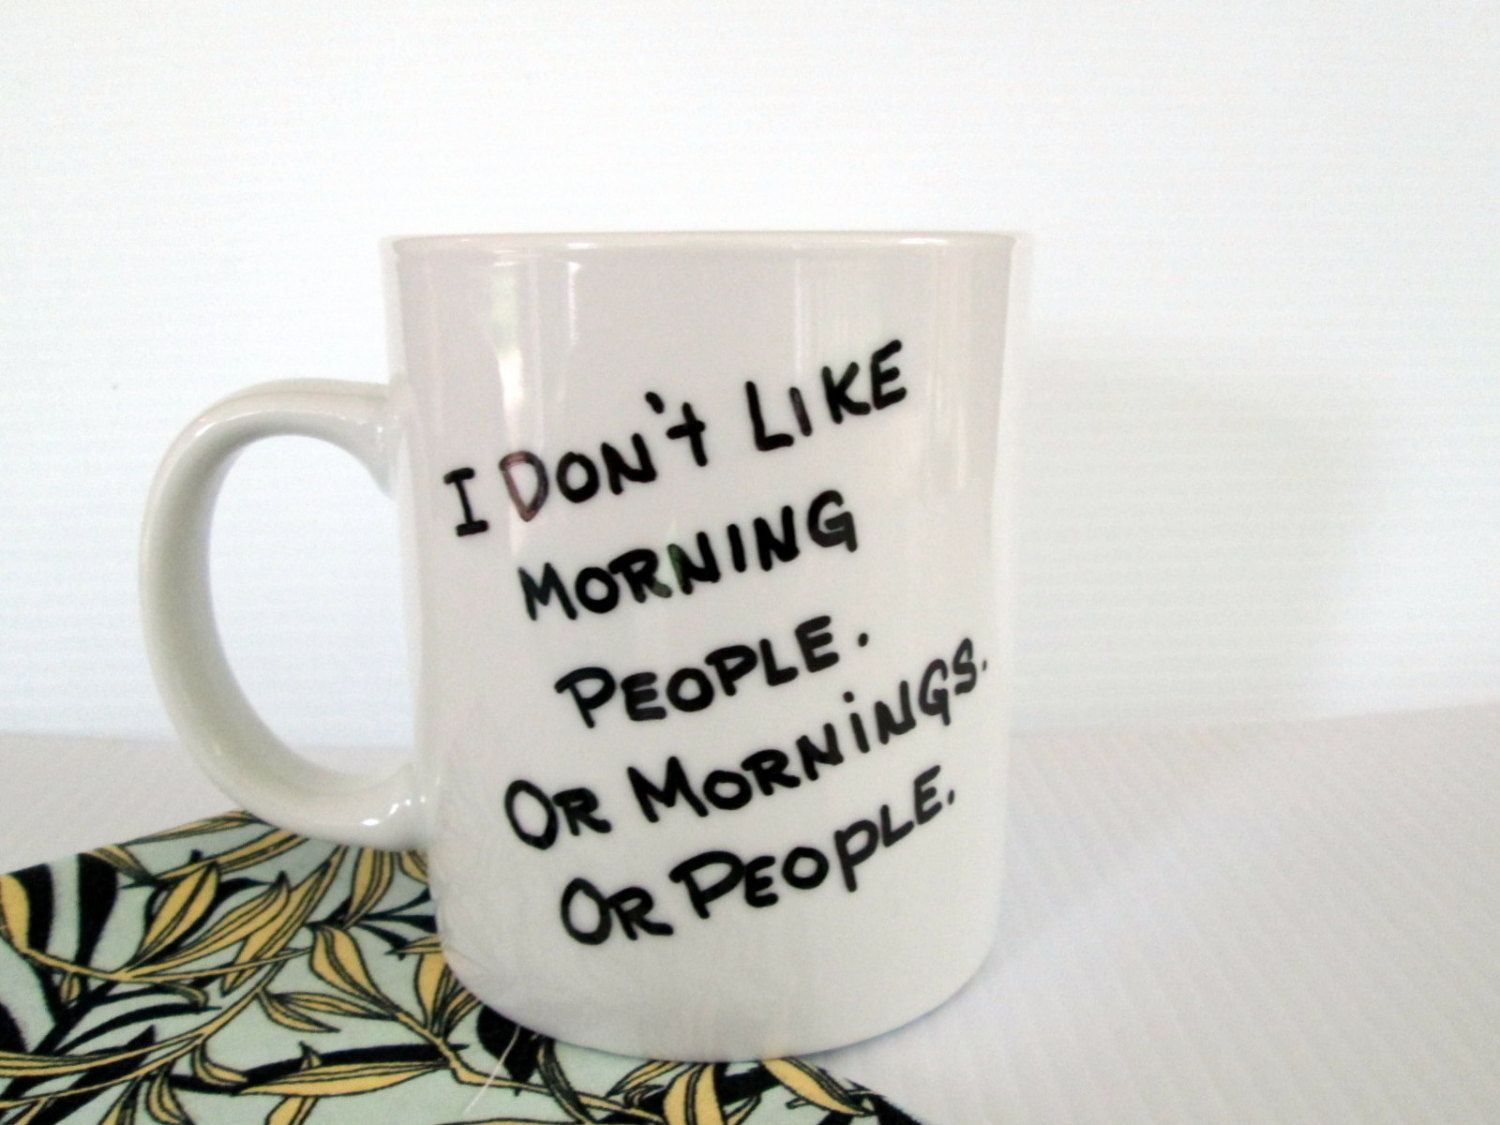 I need this for work!! I Don't Like Morning People